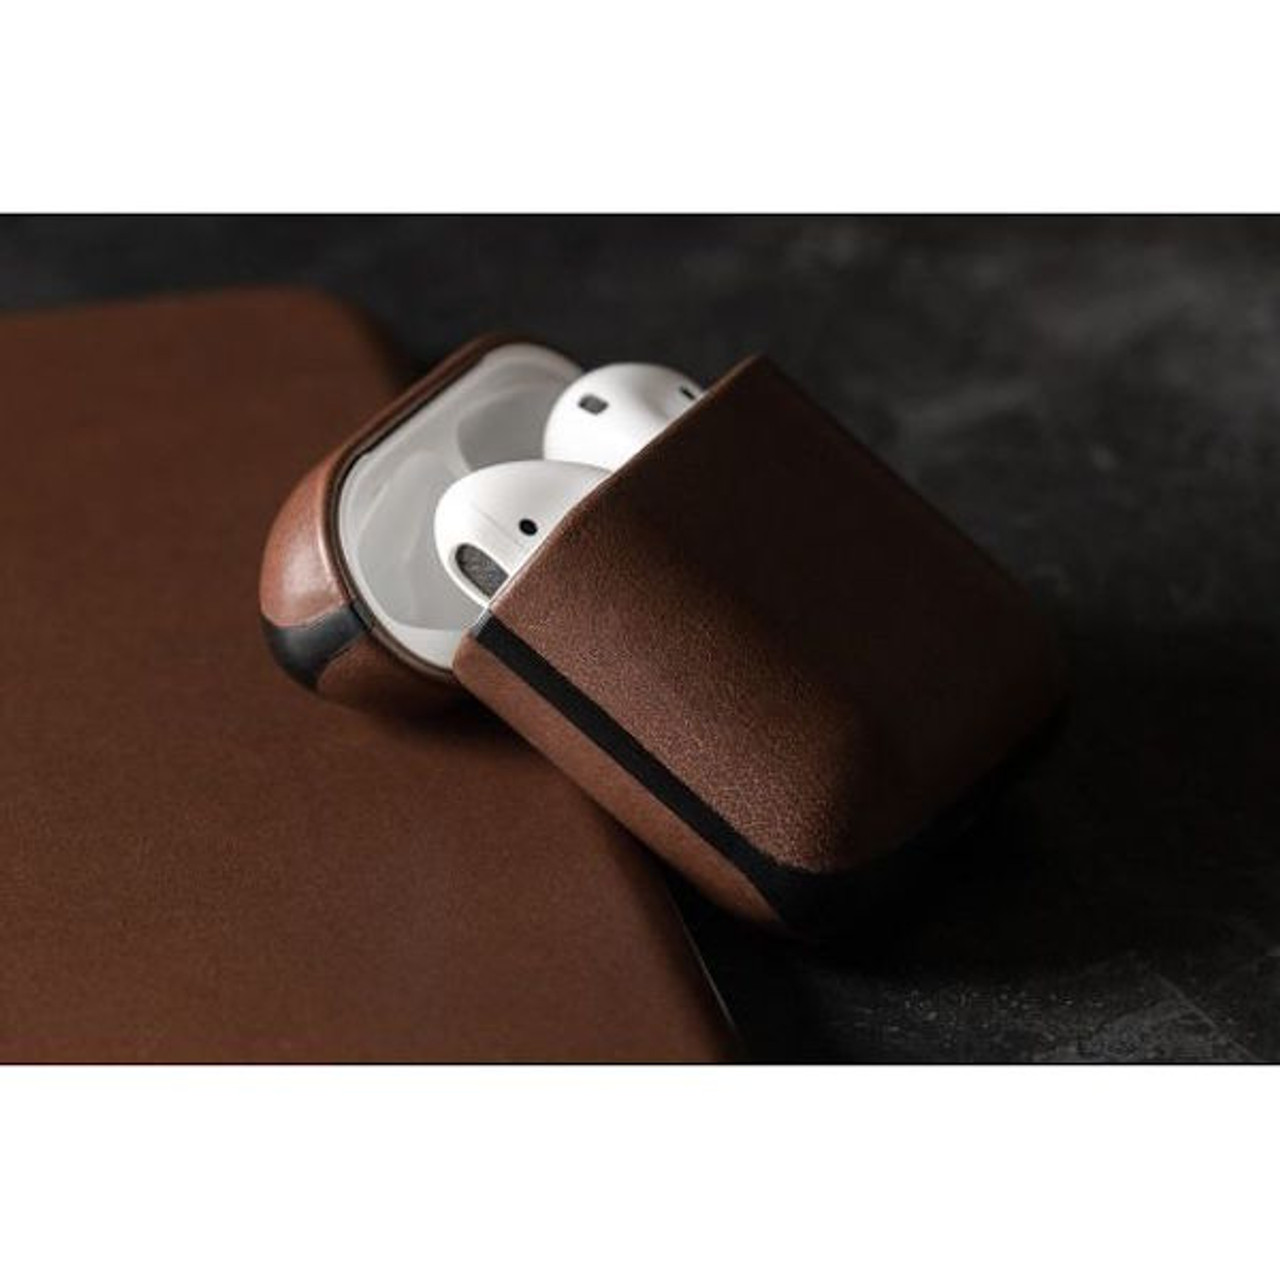 reputable site babf3 9c841 Nomad - AirPods Rugged Case - Rustic Brown